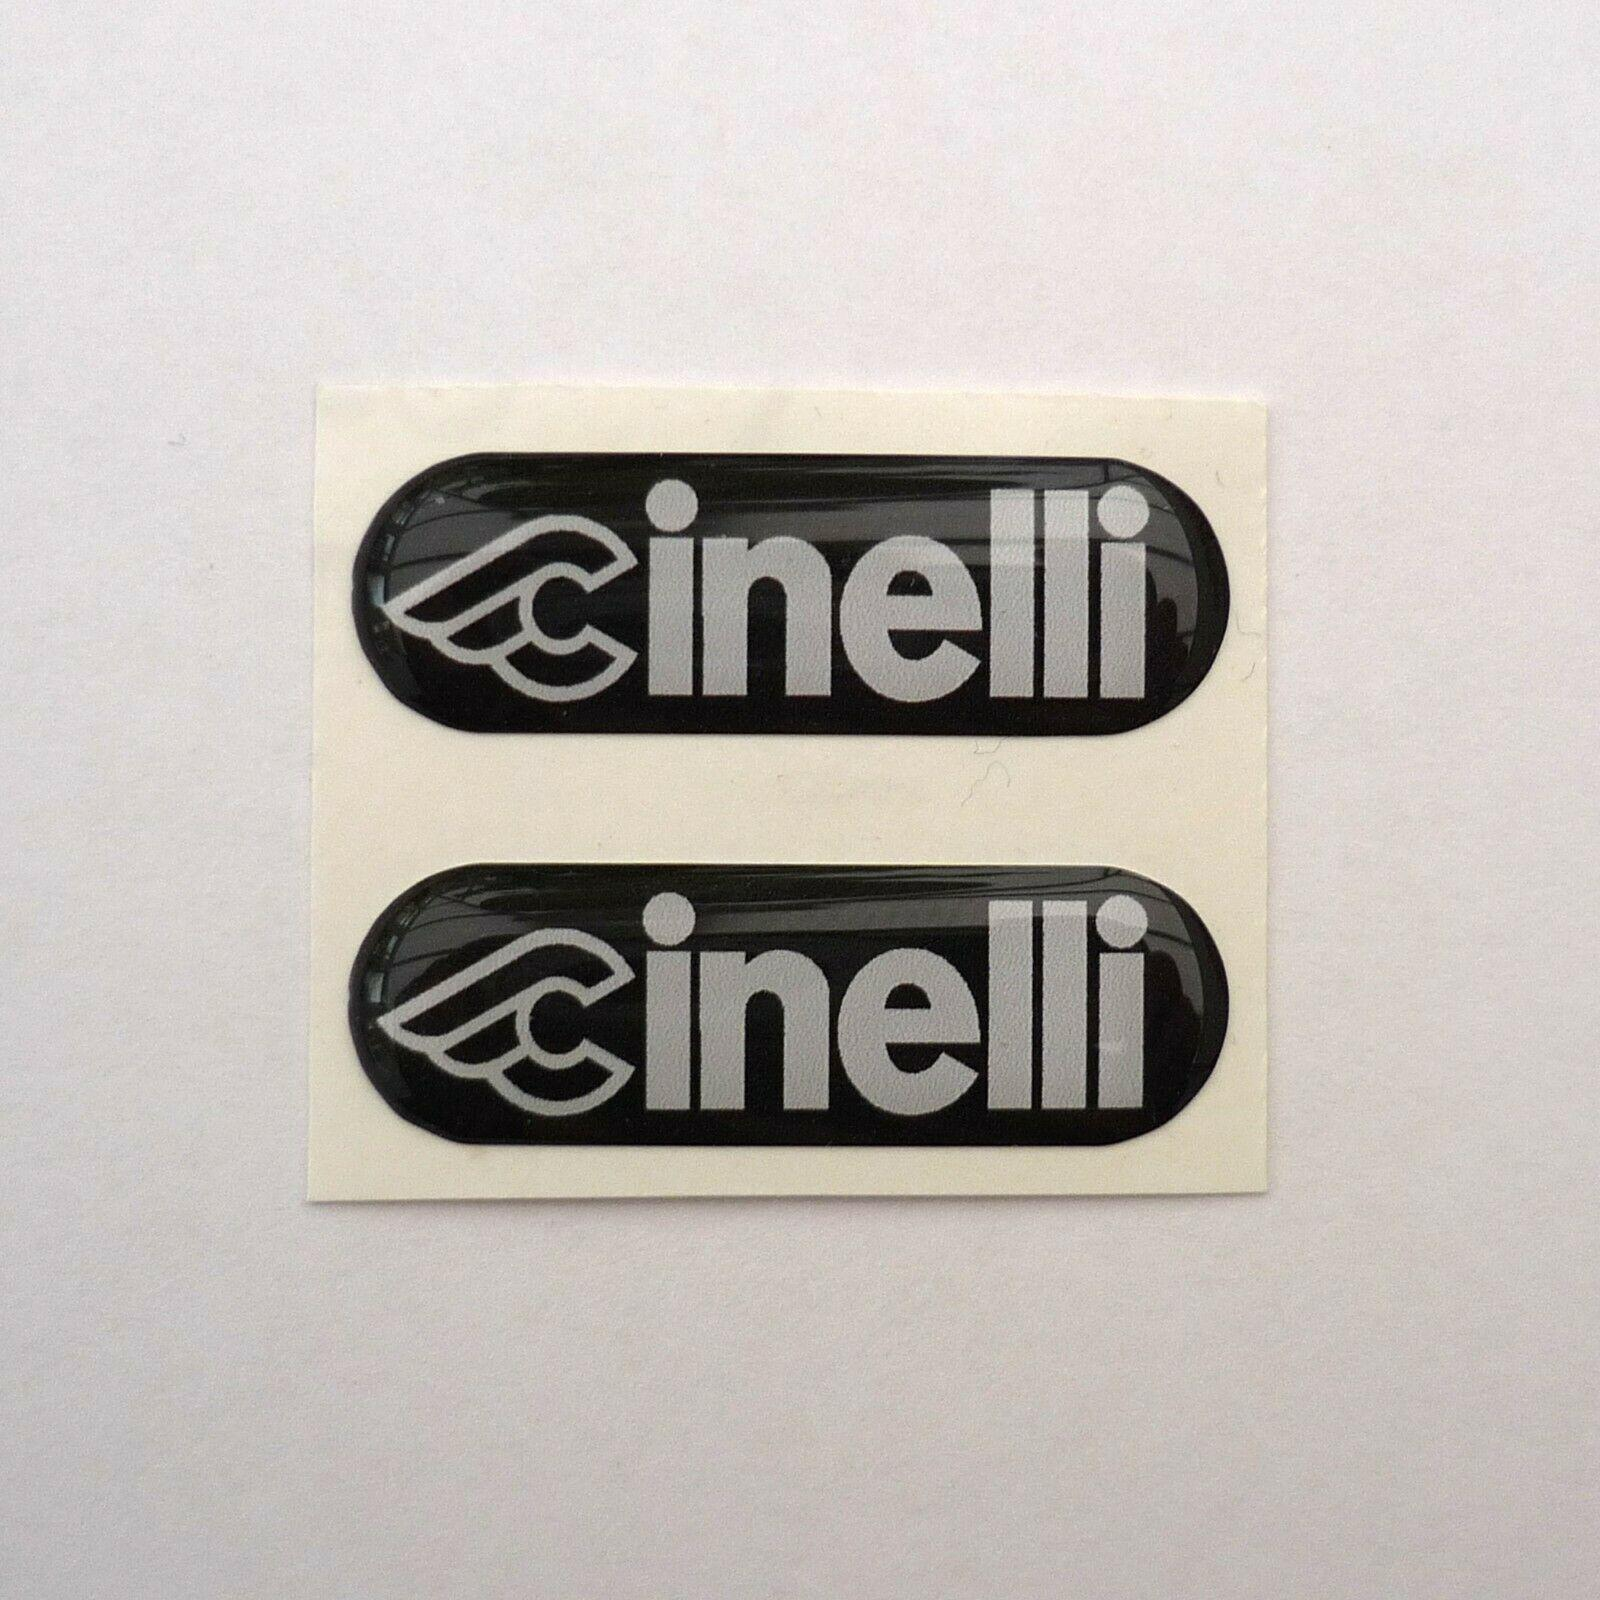 Renovation or Damaged Vintage Replacement Cinelli Supercorsa Seat Stay Badges